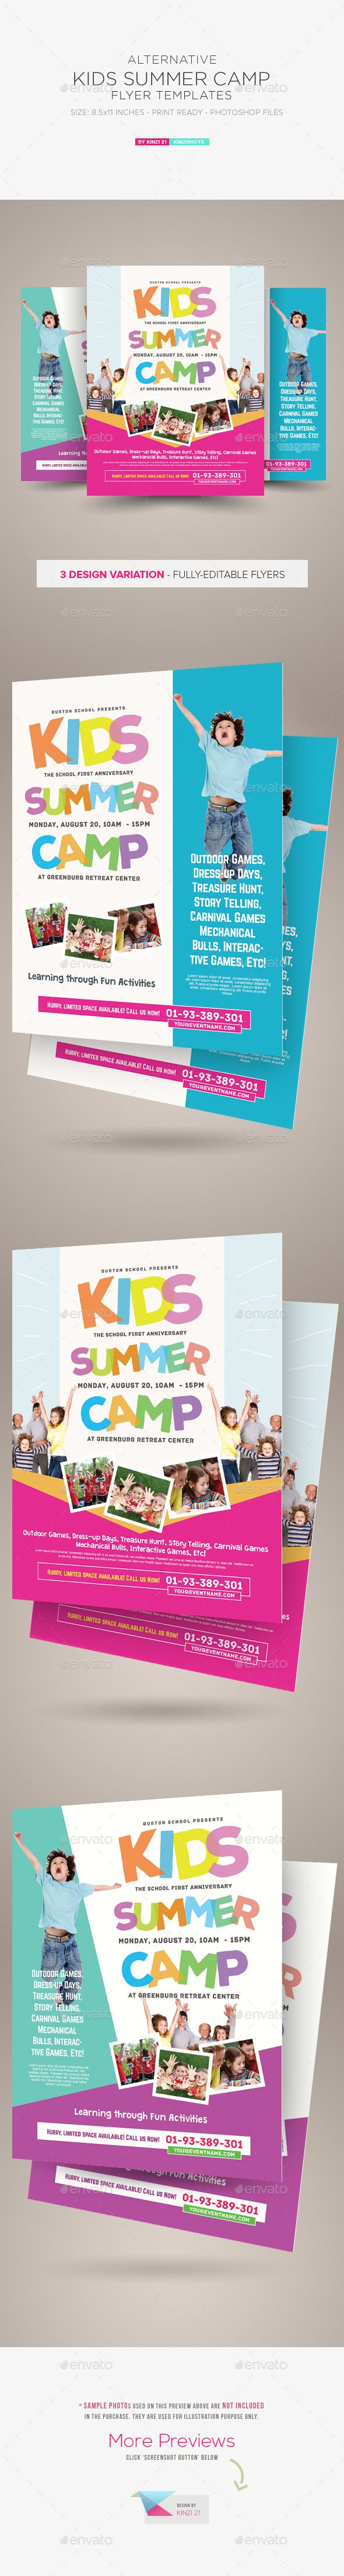 Advertising Poster Templates Gorgeous Kids Summer Camp Flyer Templates  Flyer Template Template And Camping